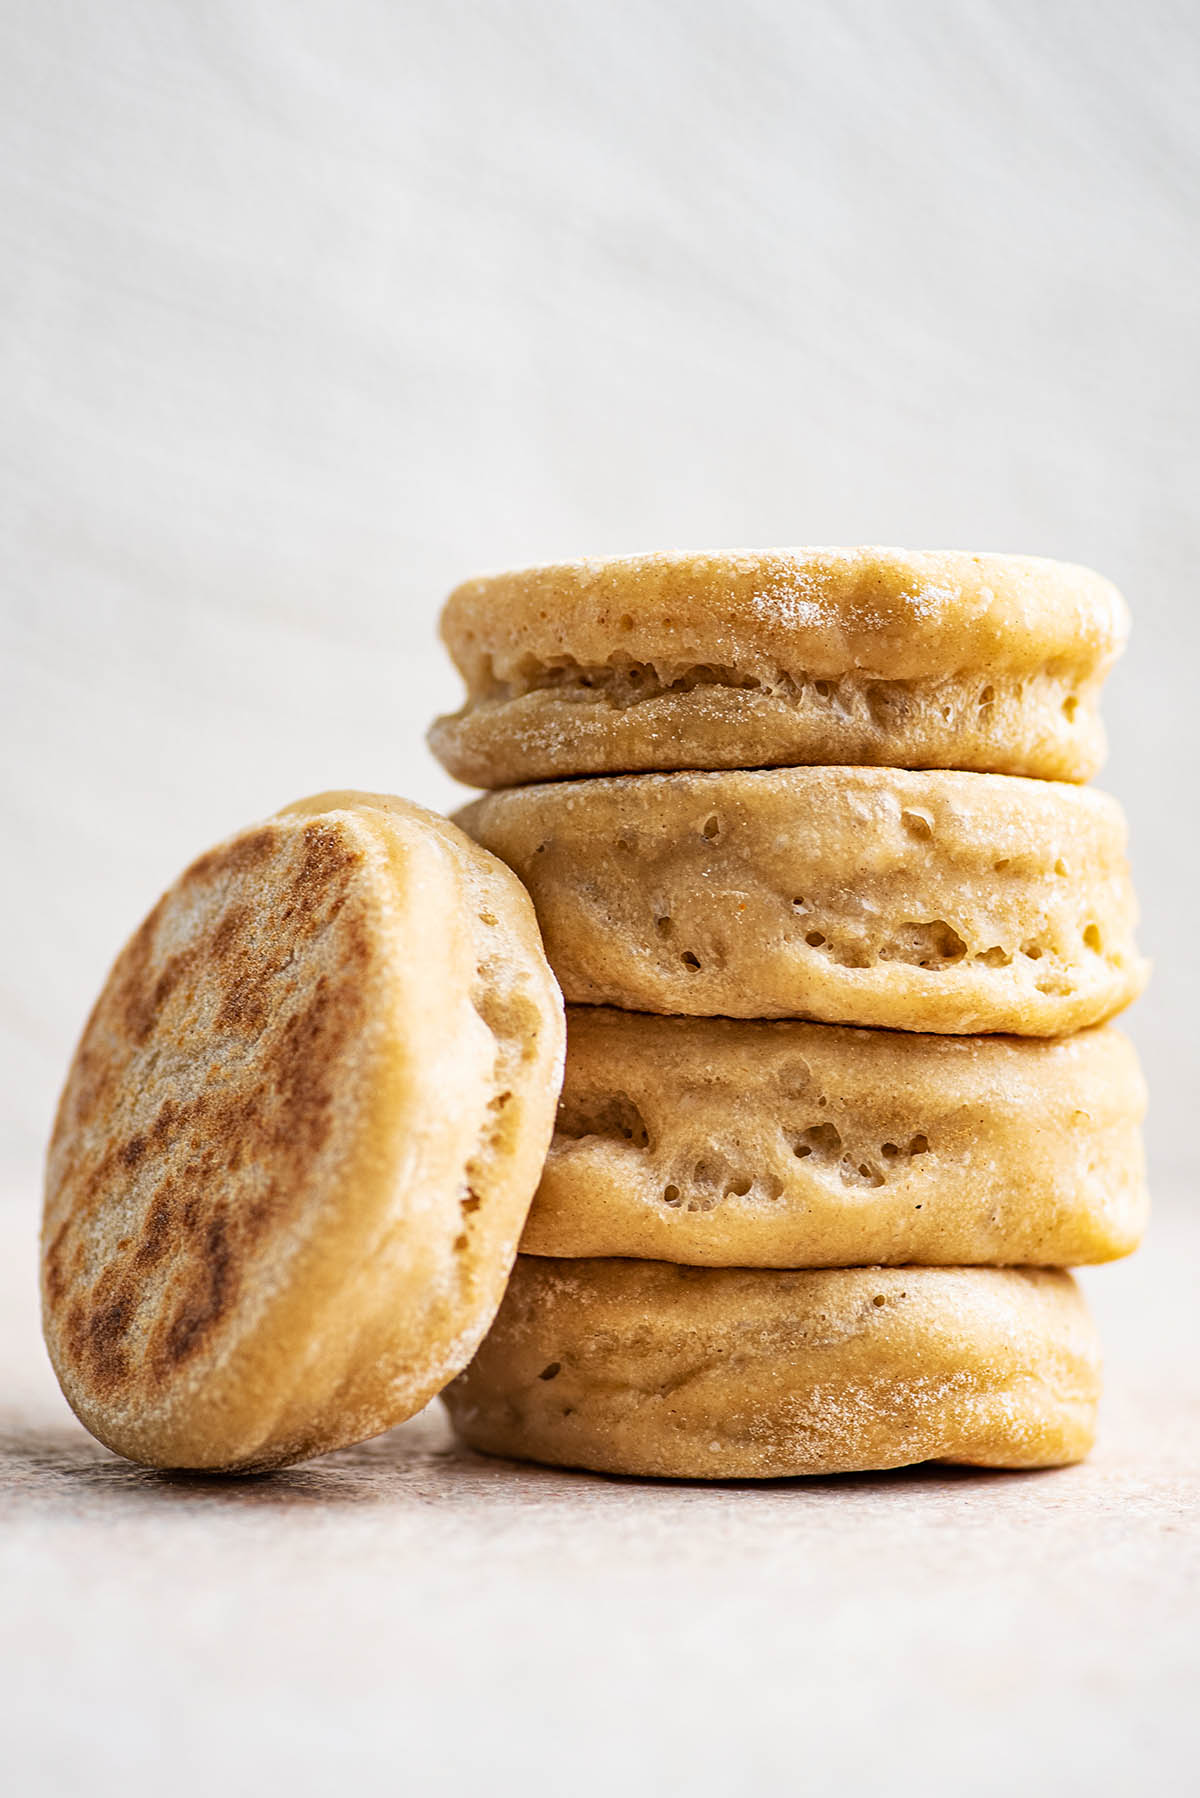 A stack of four English muffins with one leaning against it.